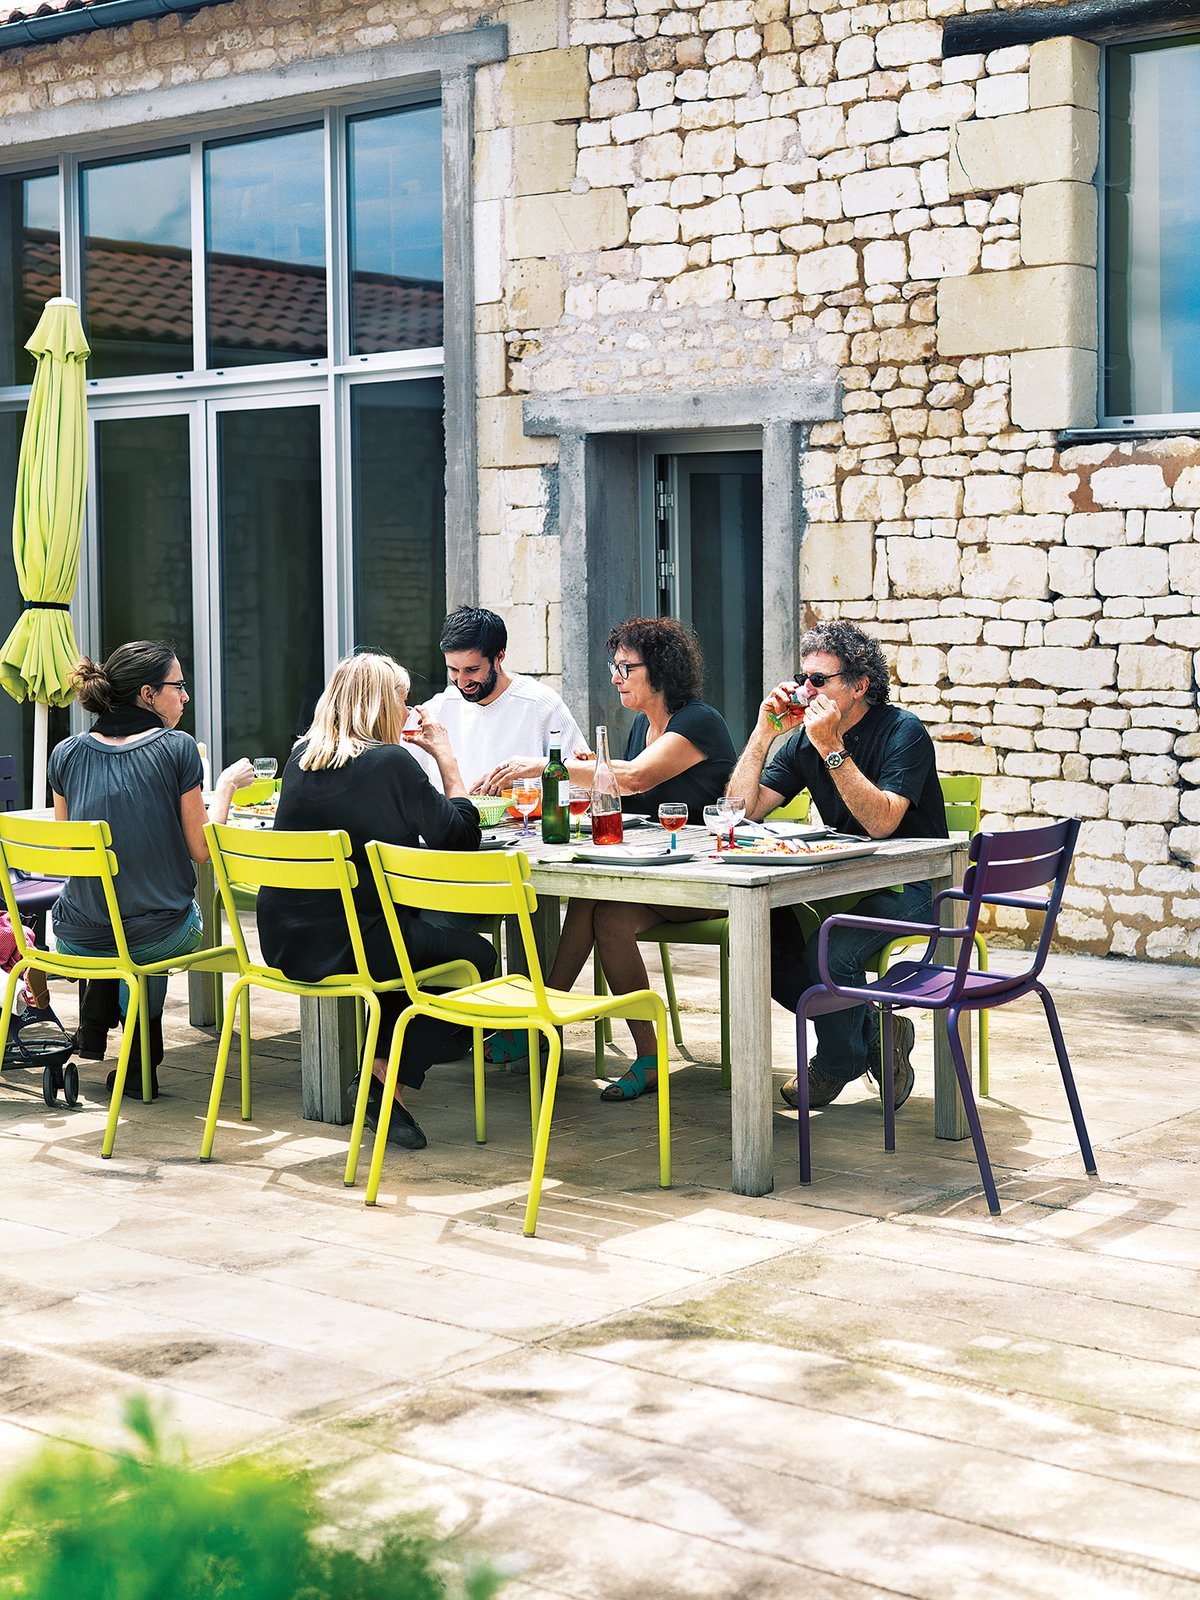 Monory's friends, the Leclercs, join her for an alfresco meal on the patio. They're seated at a custom-made table on Fermob's Luxembourg chairs.  Photo 7 of 12 in Matali Crasset Renovates Monory Farmhouse